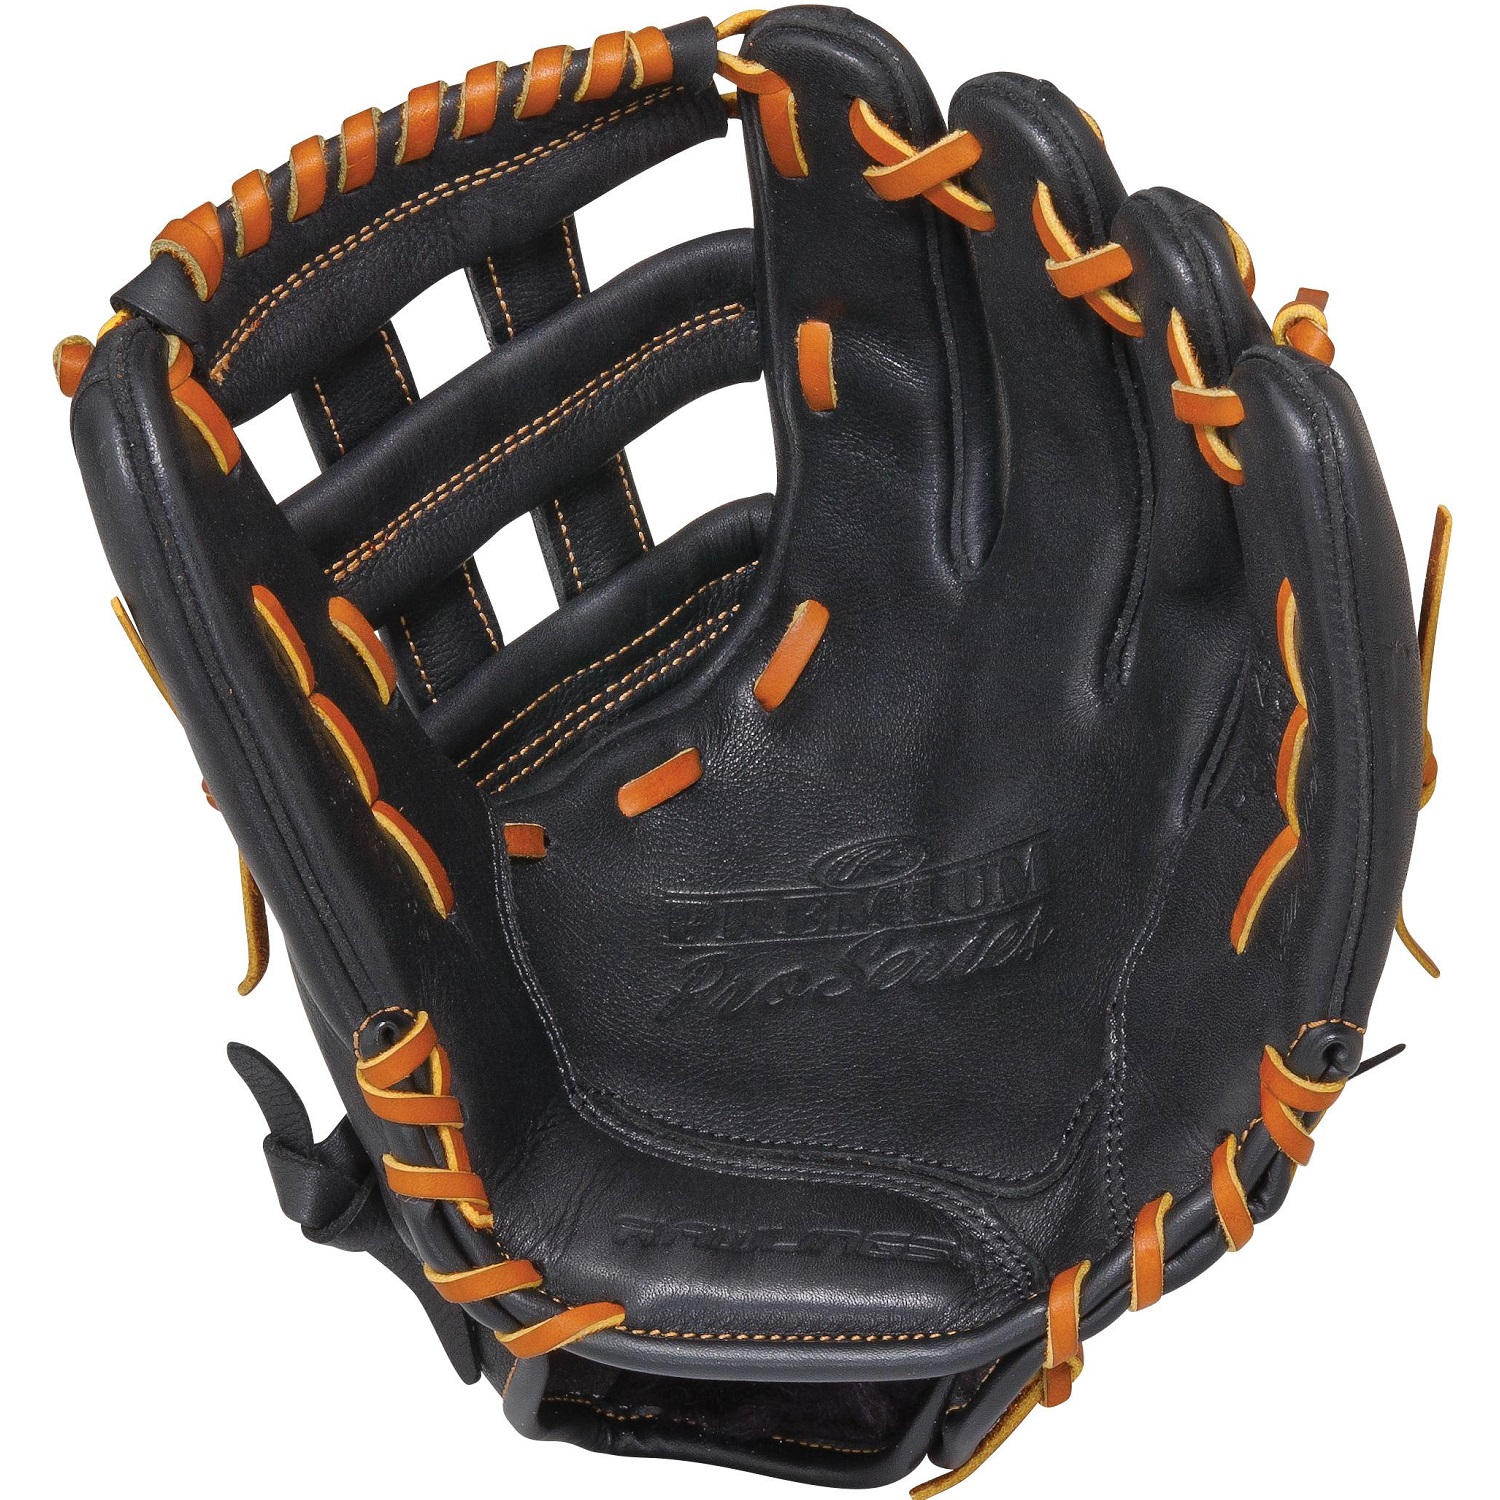 "Rawlings Premium Pro 12.5"" Outfield Baseball Glove LH"